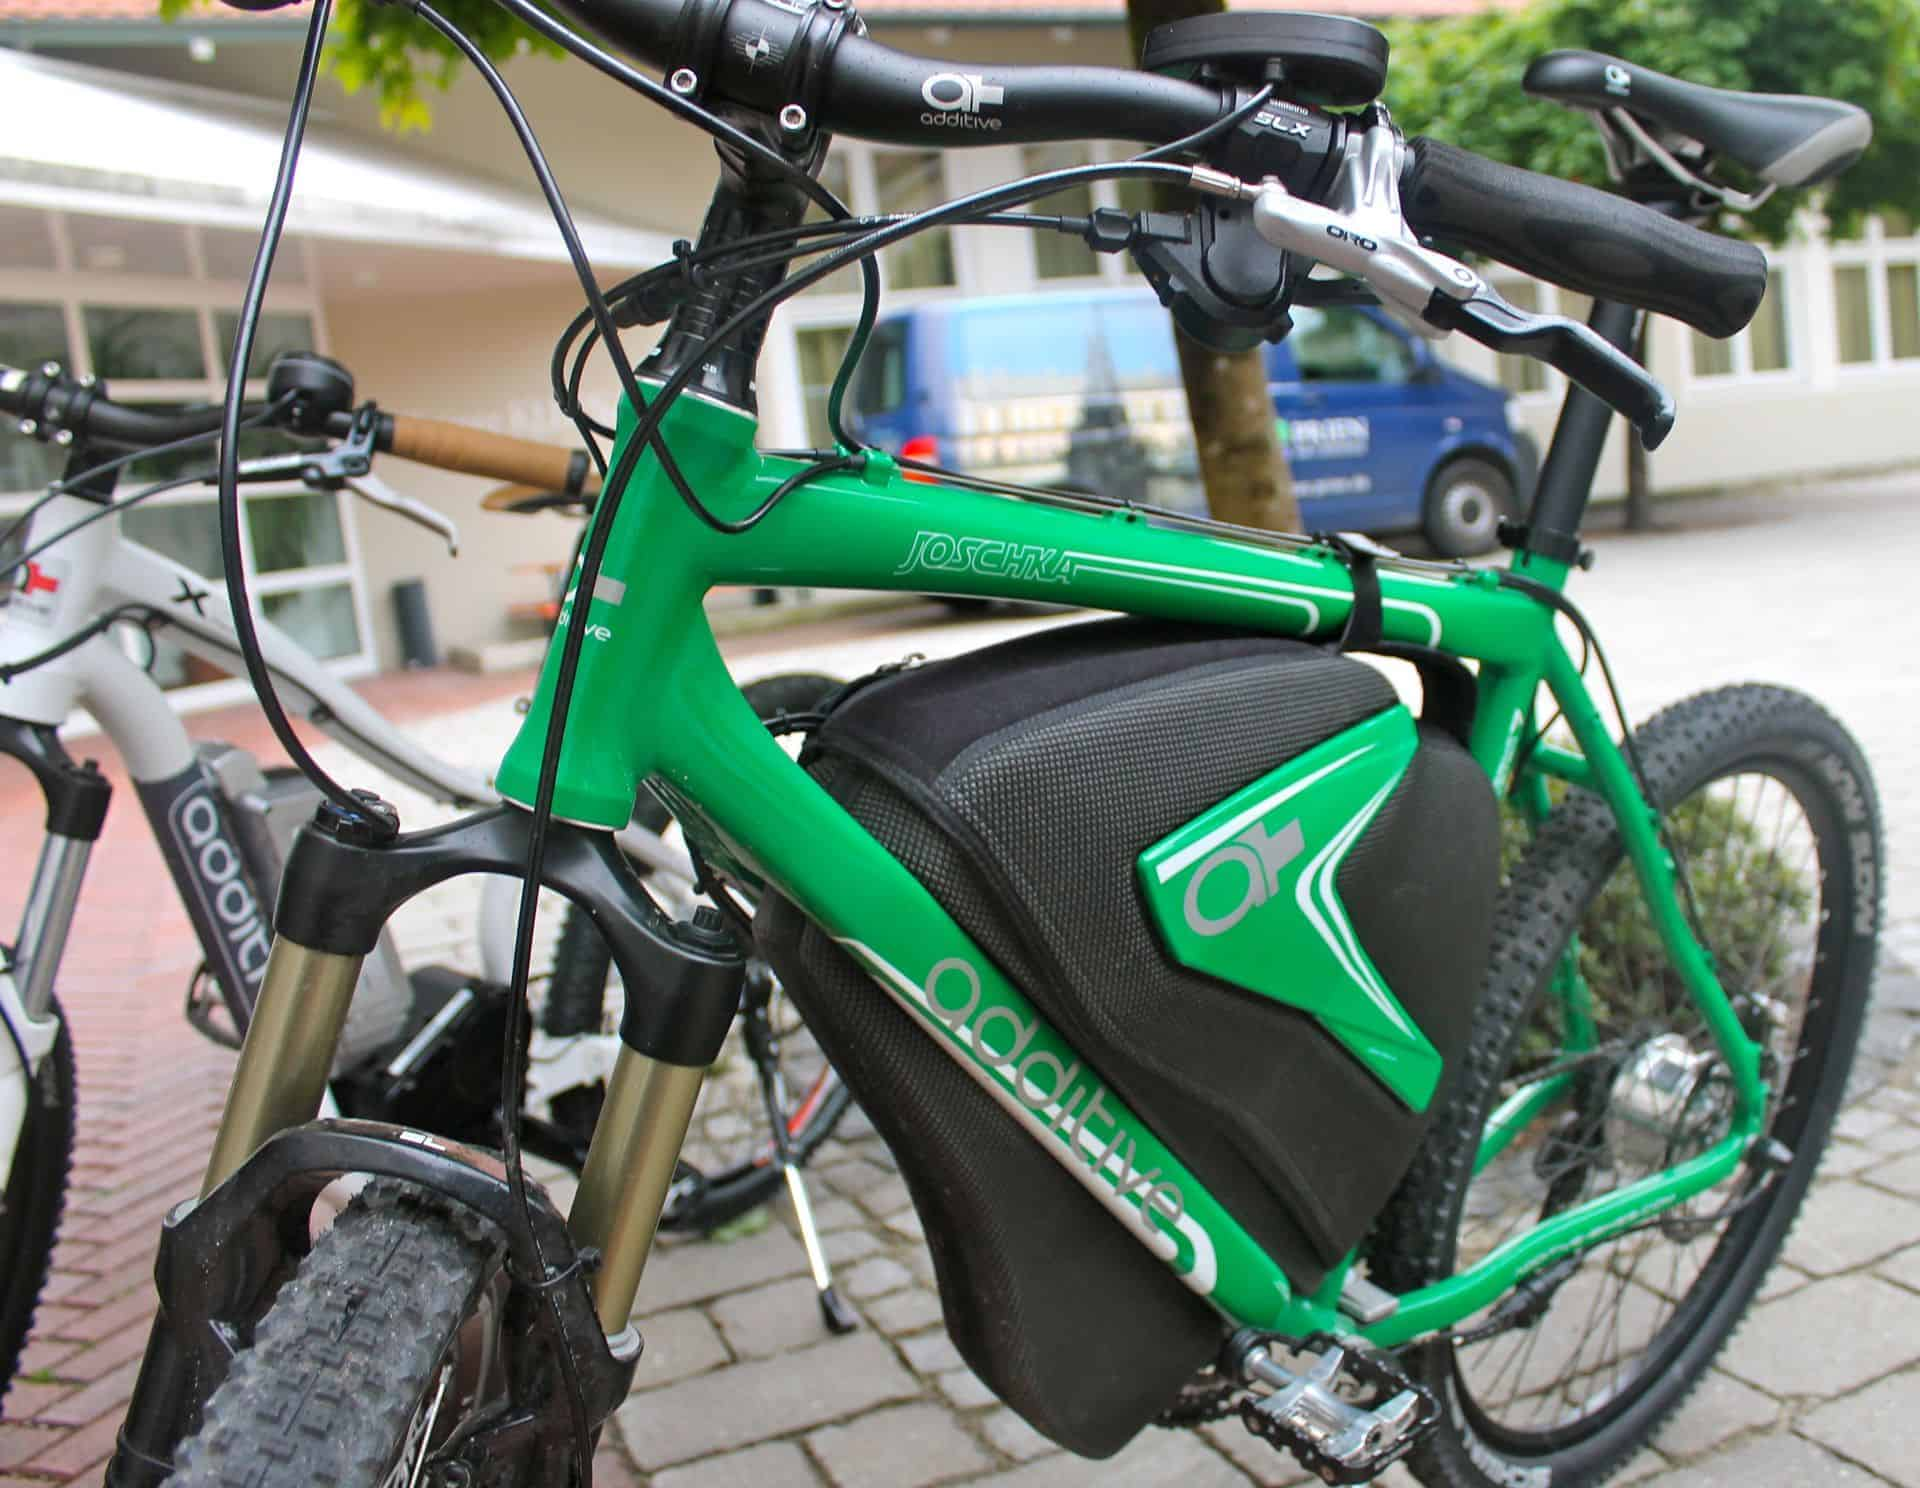 Additive bike at Prien am Chiemsee, Germany